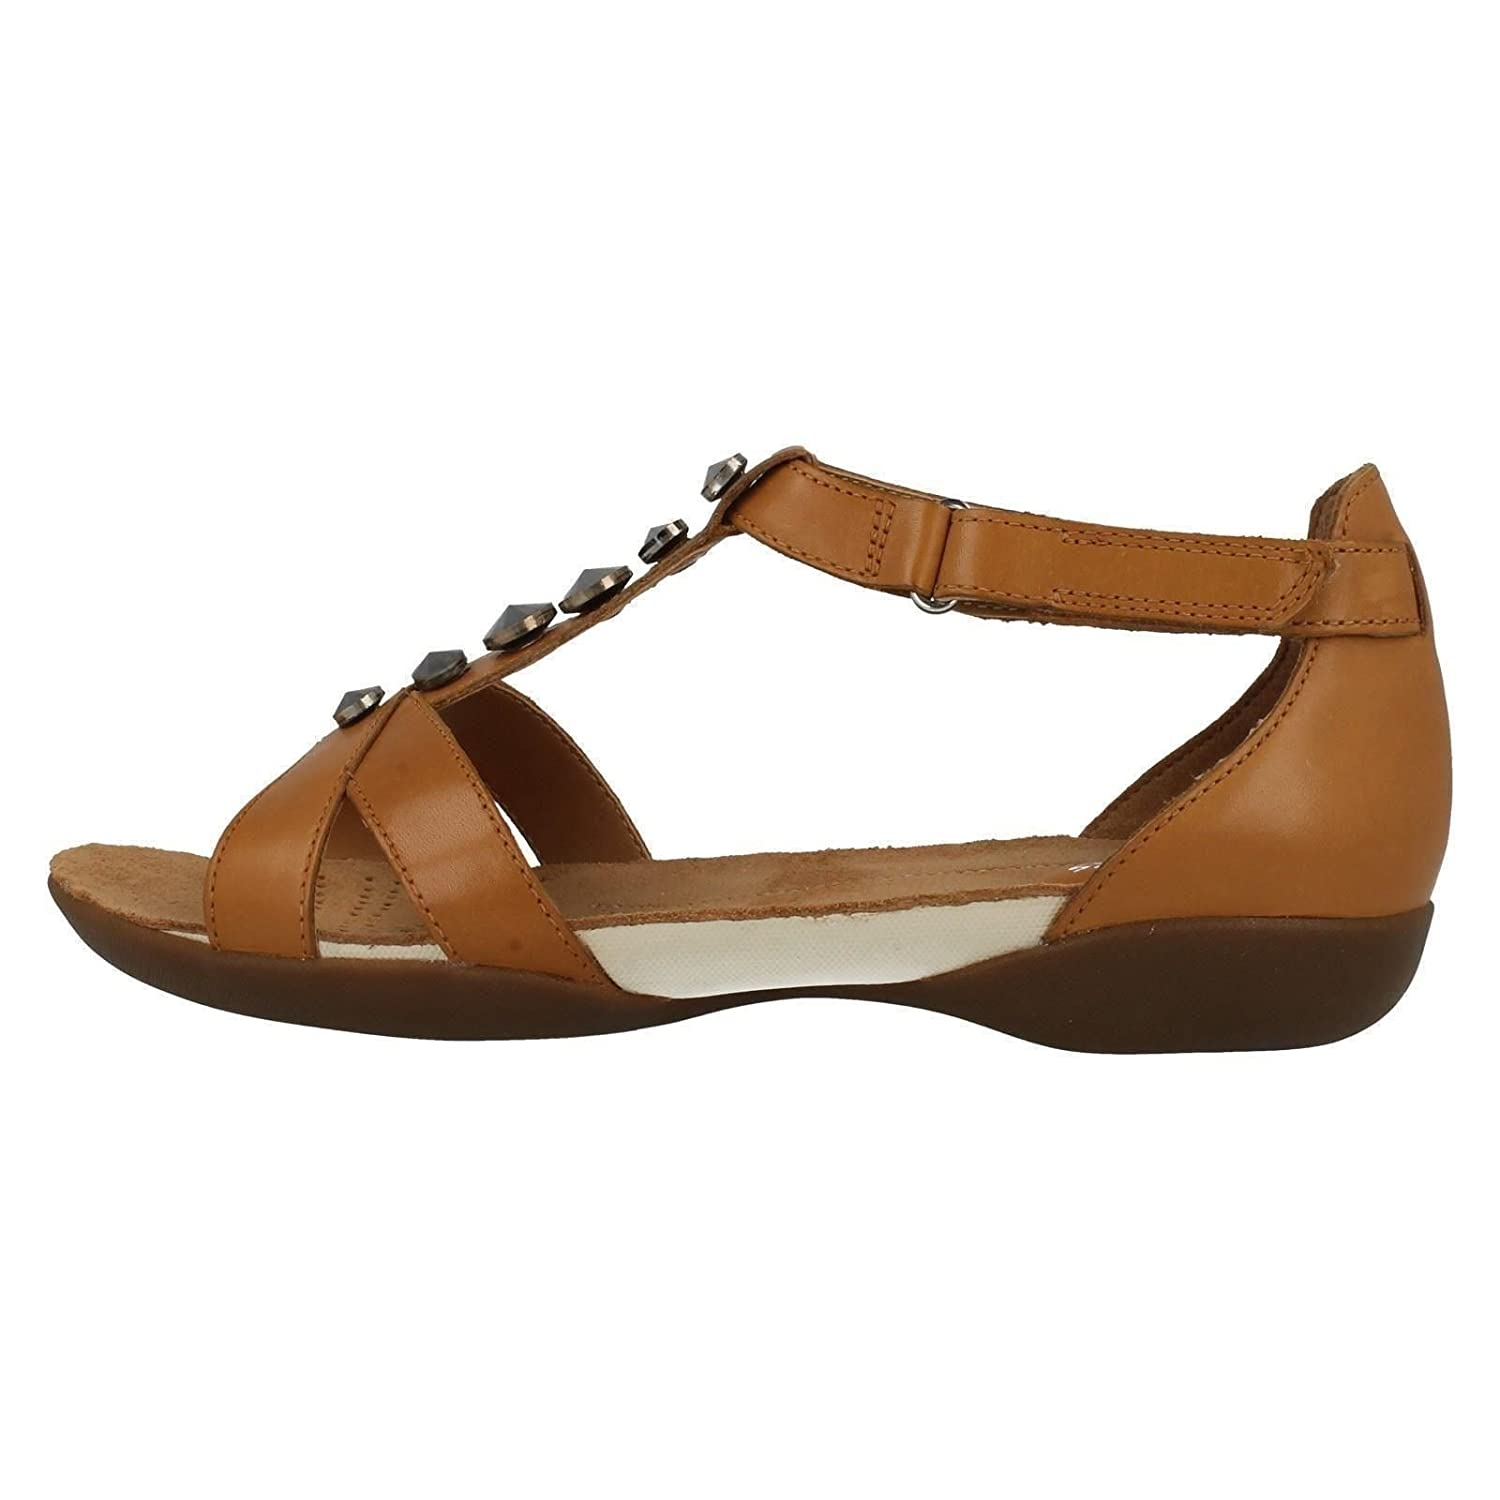 93f74f4cf88ae0 Clarks Ladies T-Bar Flat Sandals Raffi Scent Tan Leather Size 8E   Amazon.co.uk  Shoes   Bags